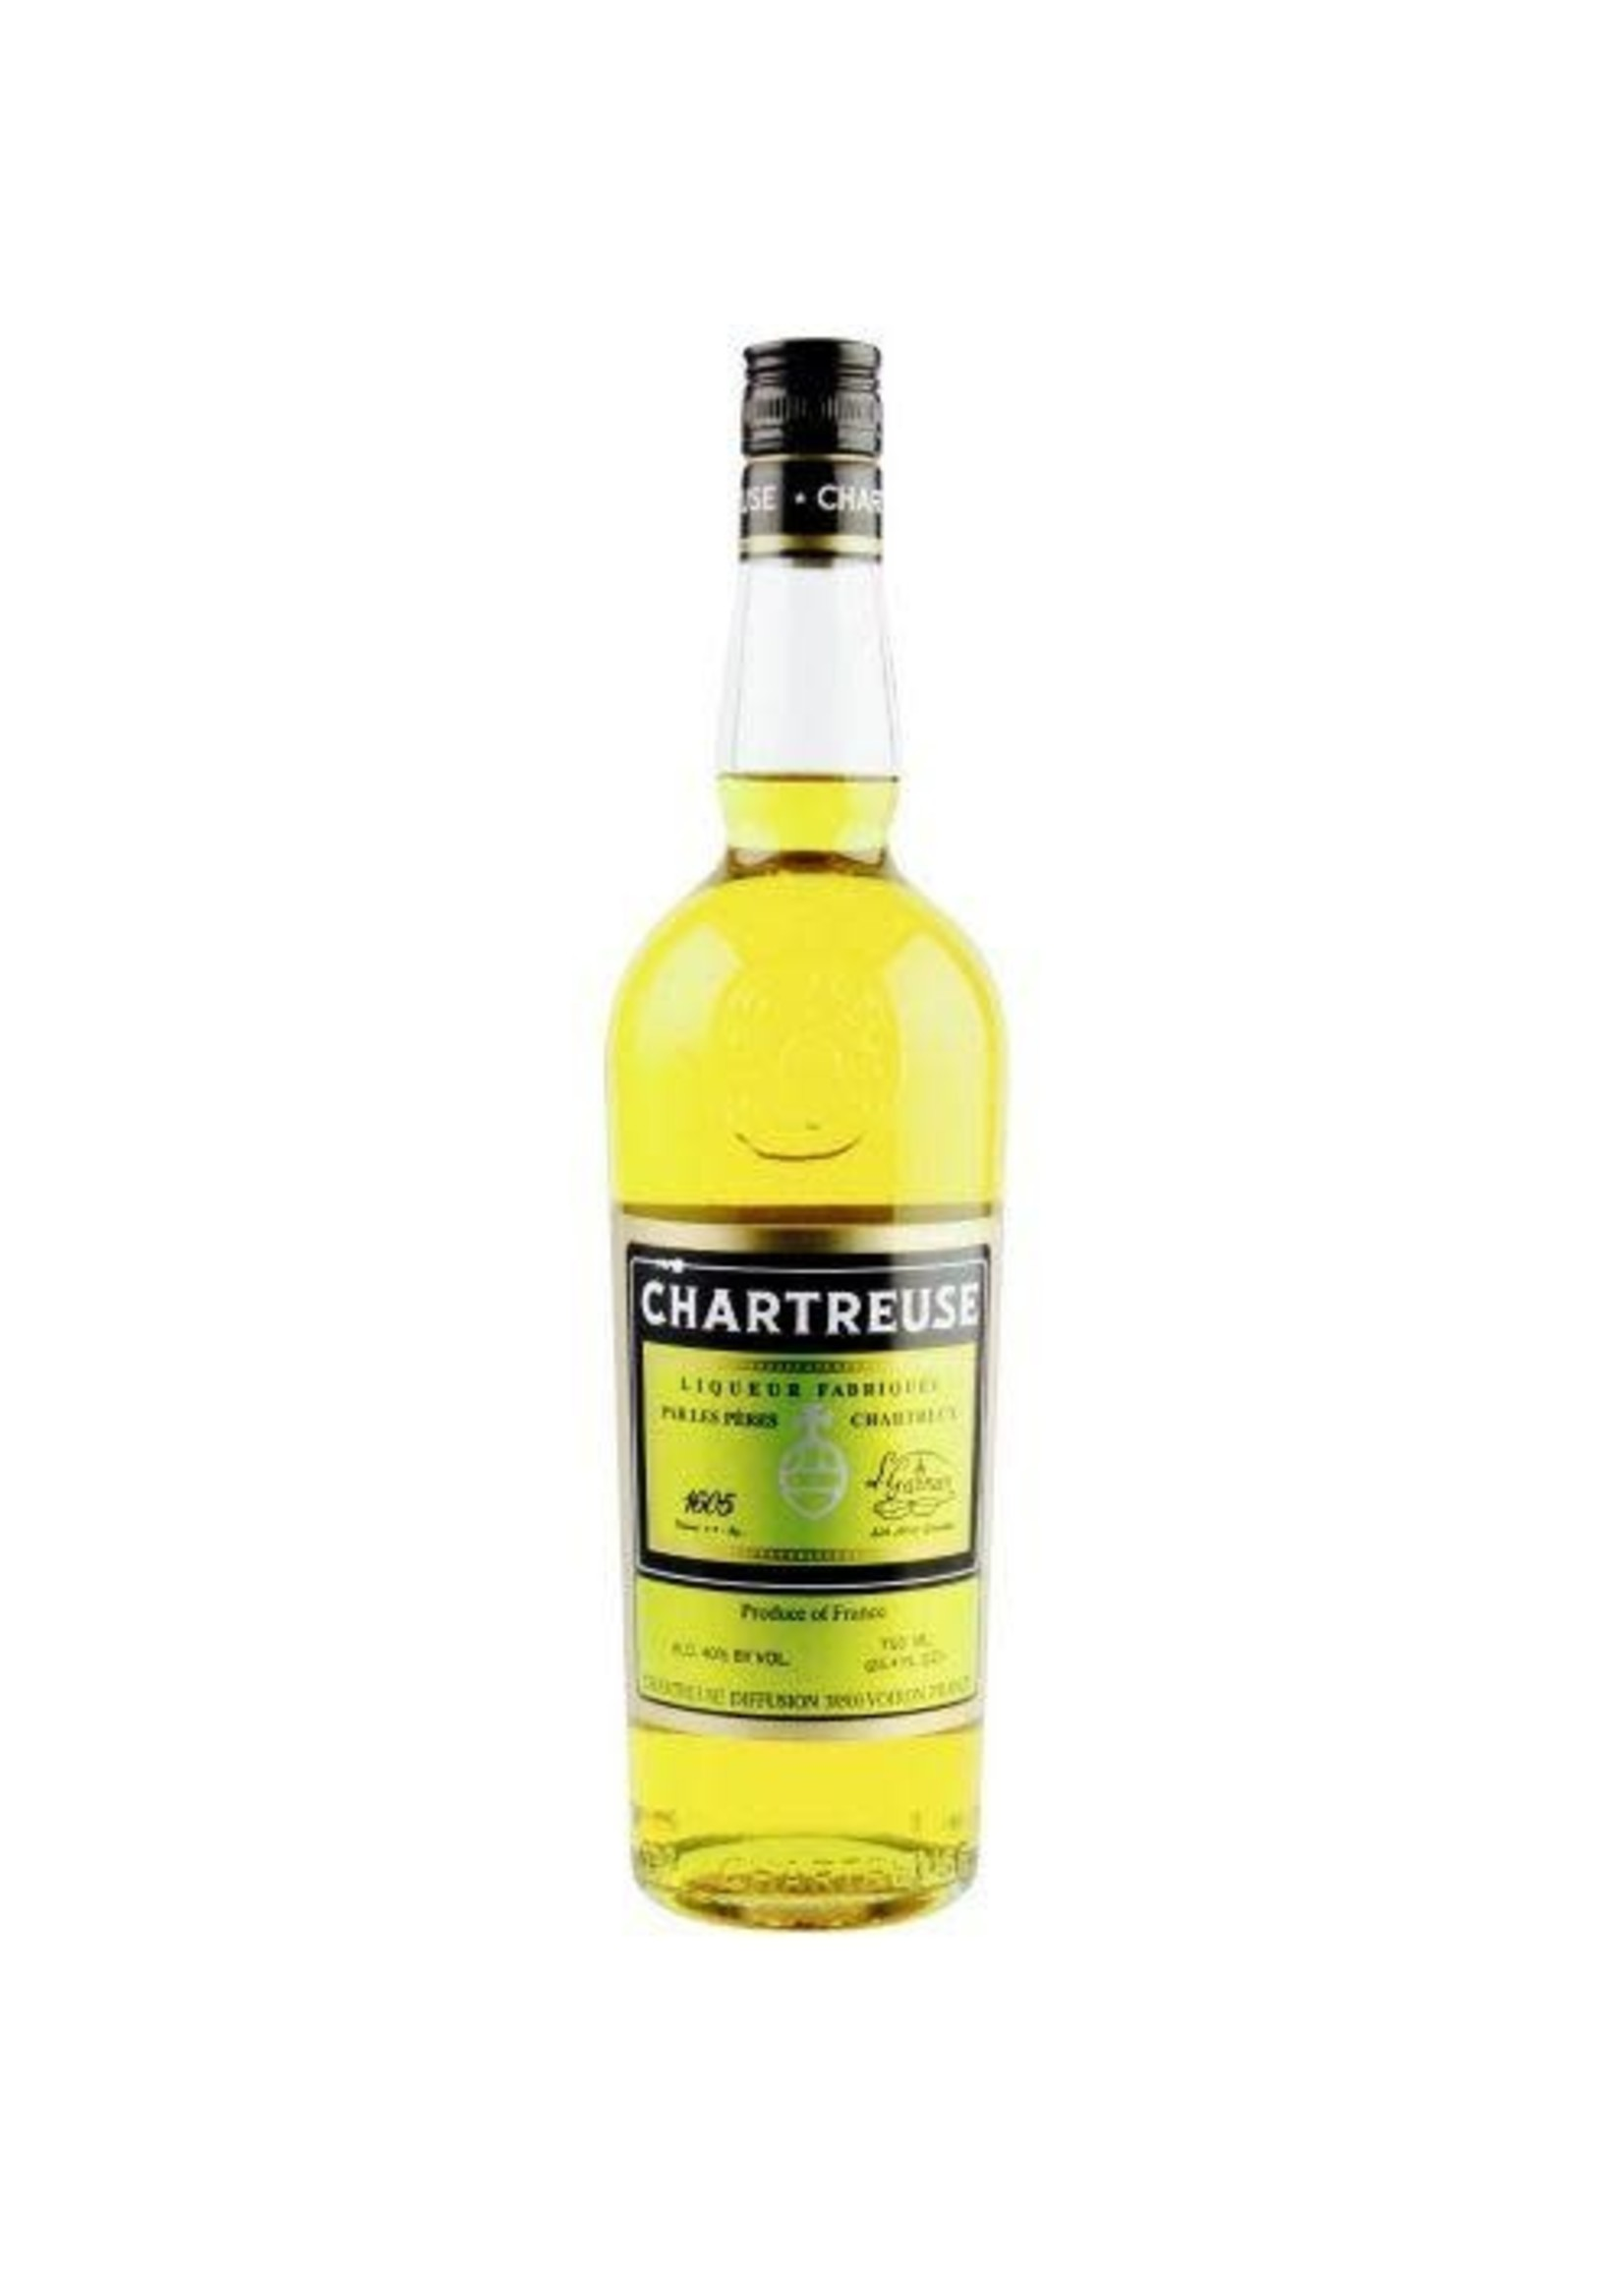 Chartreuse Chartreuse / Yellow Liqueur / 750mL